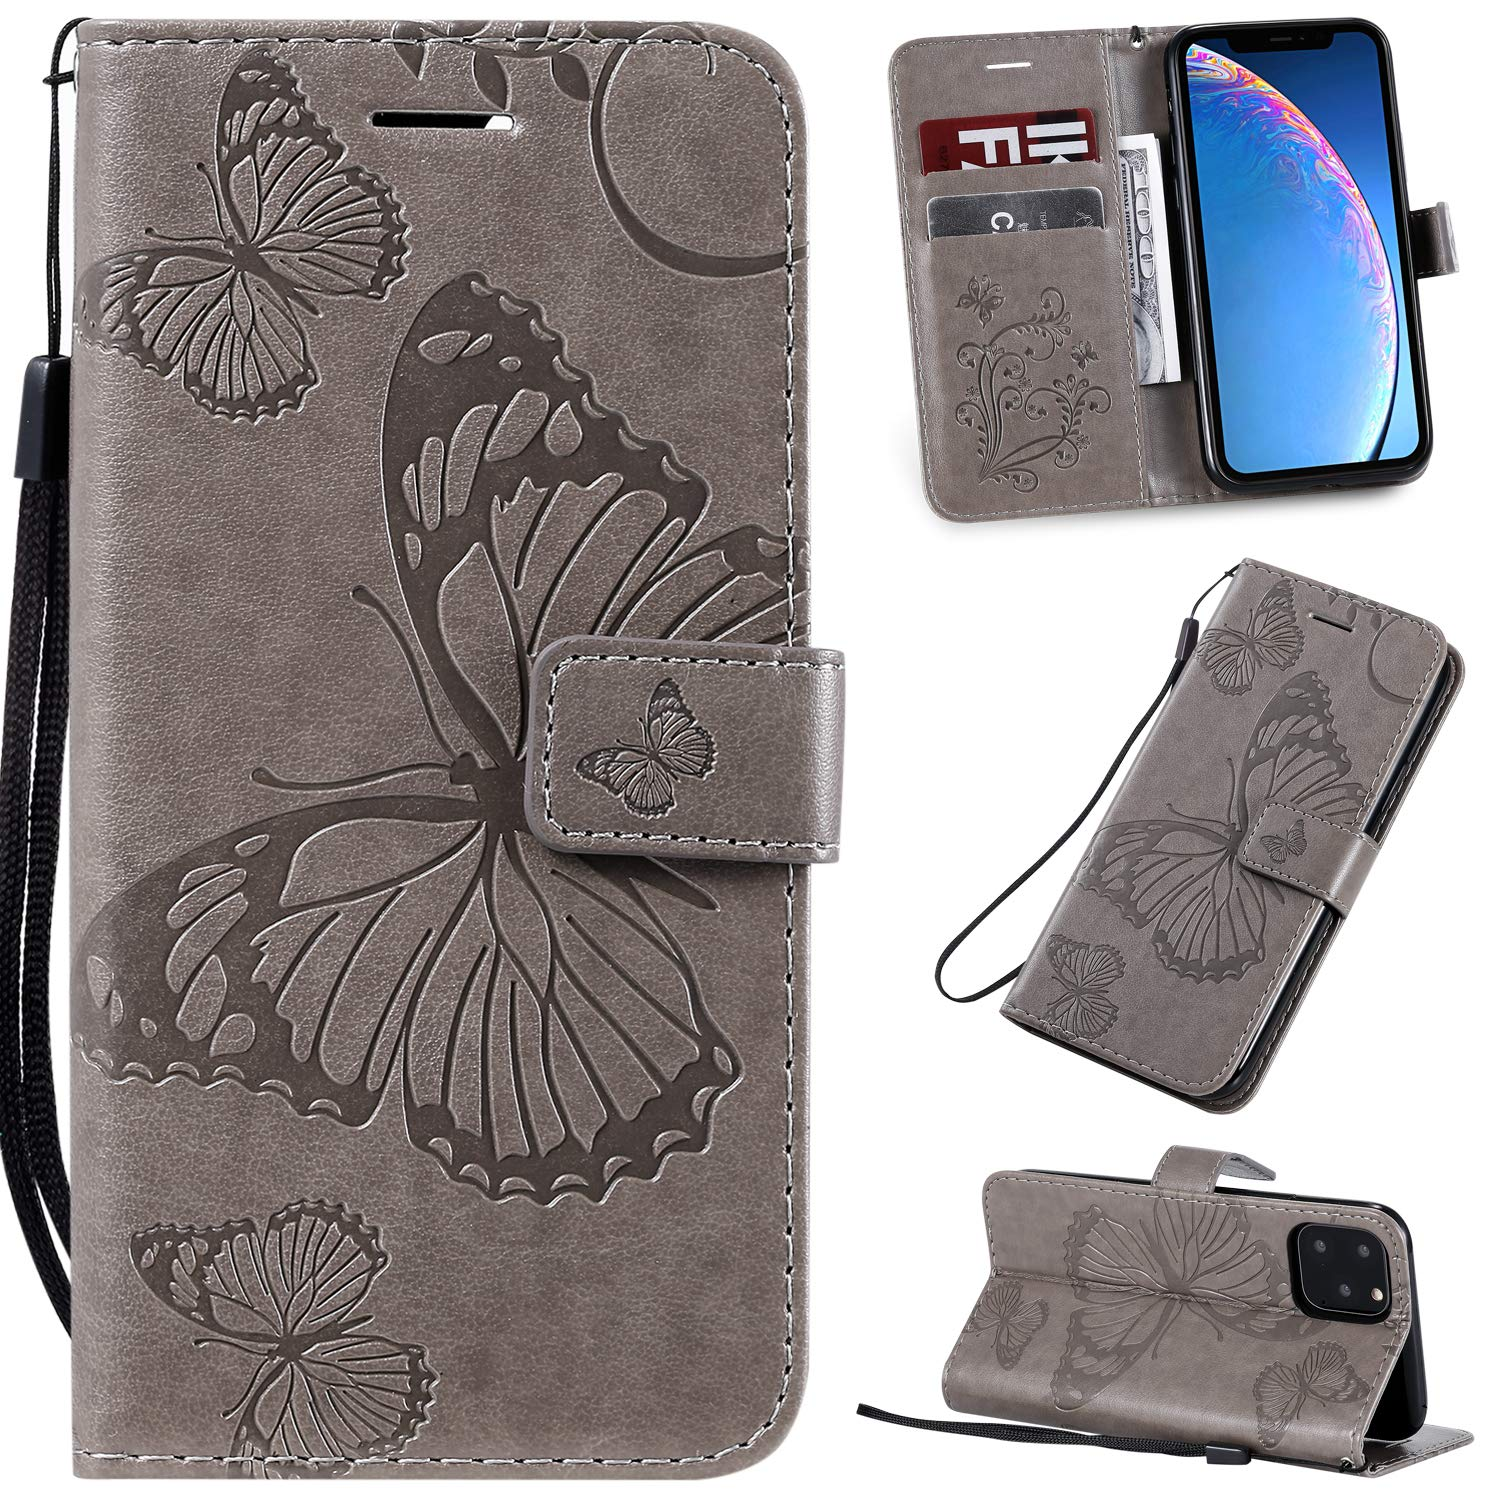 Tznzxm iPhone XI 2019 Case,iPhone 11 Pro Wallet,3D Embossed Butterfly PU Leather Magnetic Wallet Protective Flip Kickstand Cover with Credit Card Slots and Wrist Wallet for iPhone 11 Pro 5.8'' Grey by Tznzxm